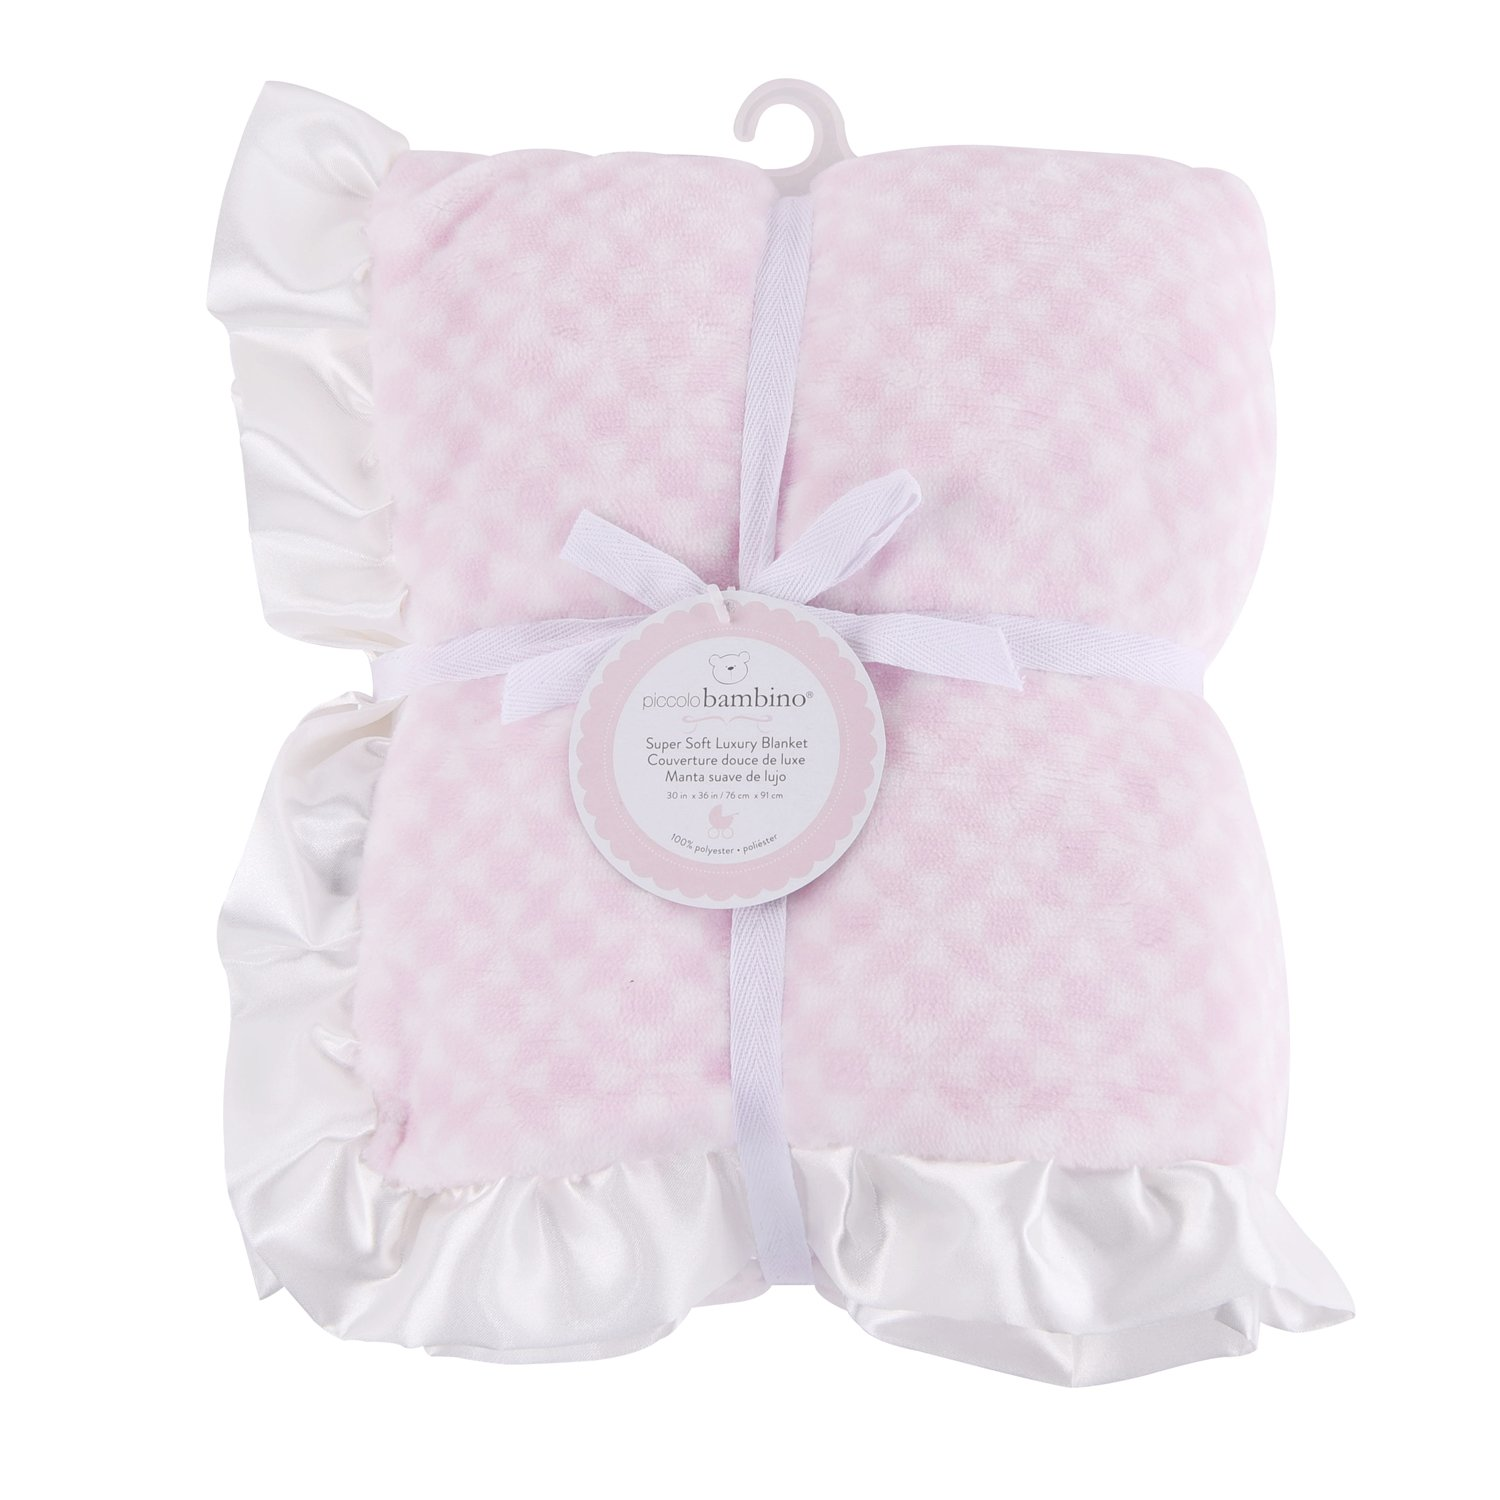 Piccolo Bambino - Super Soft Luxury Blanket with White Satin Border, Blue Abond Group Inc.